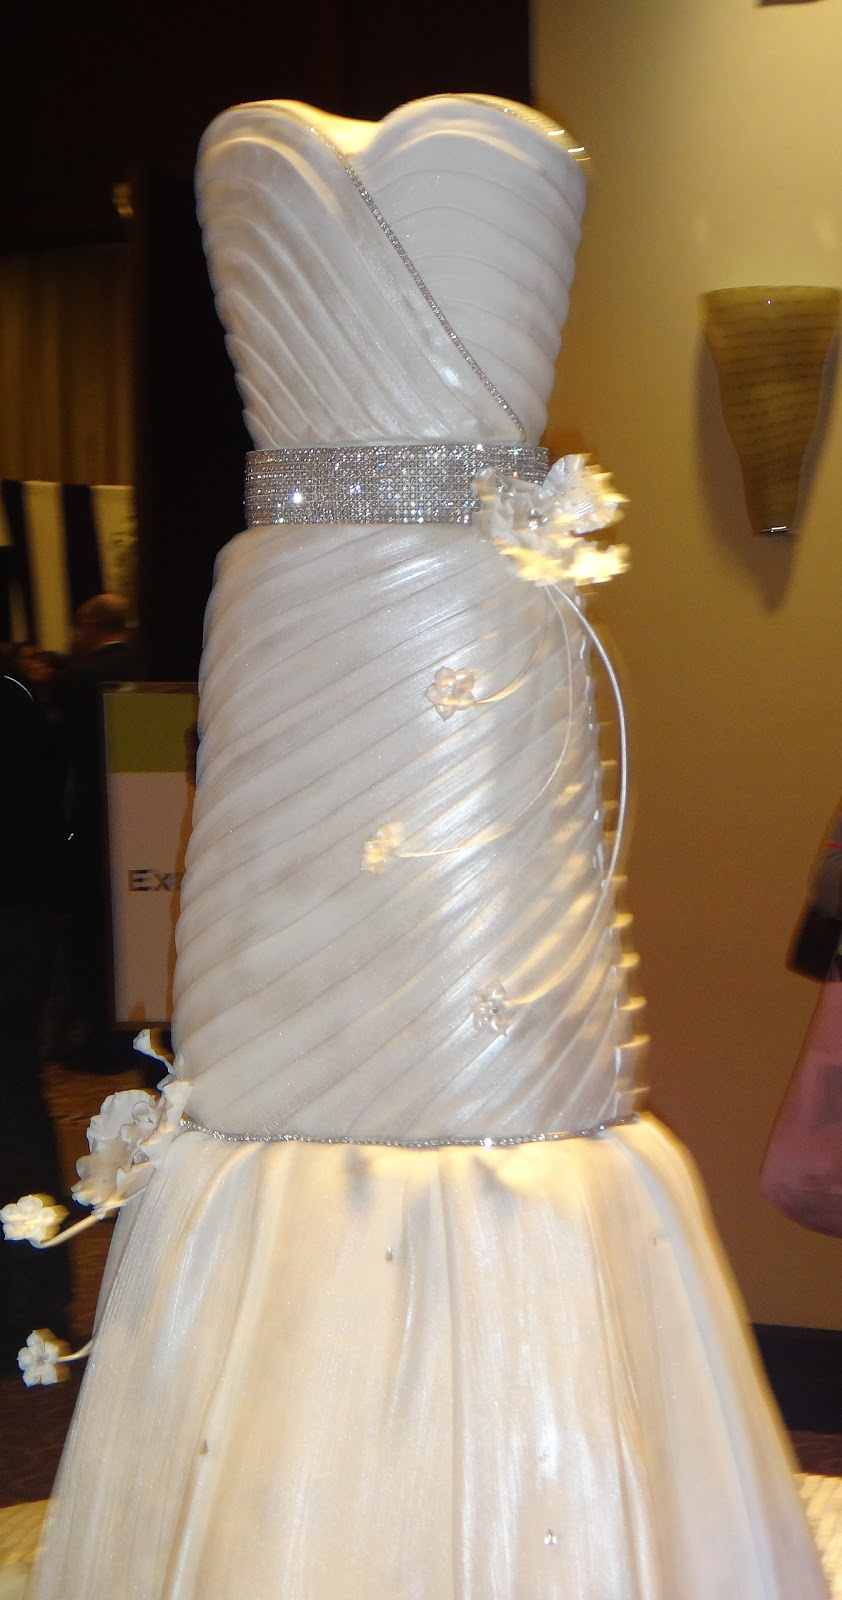 wedding dress cake wedding dress cake at the i do